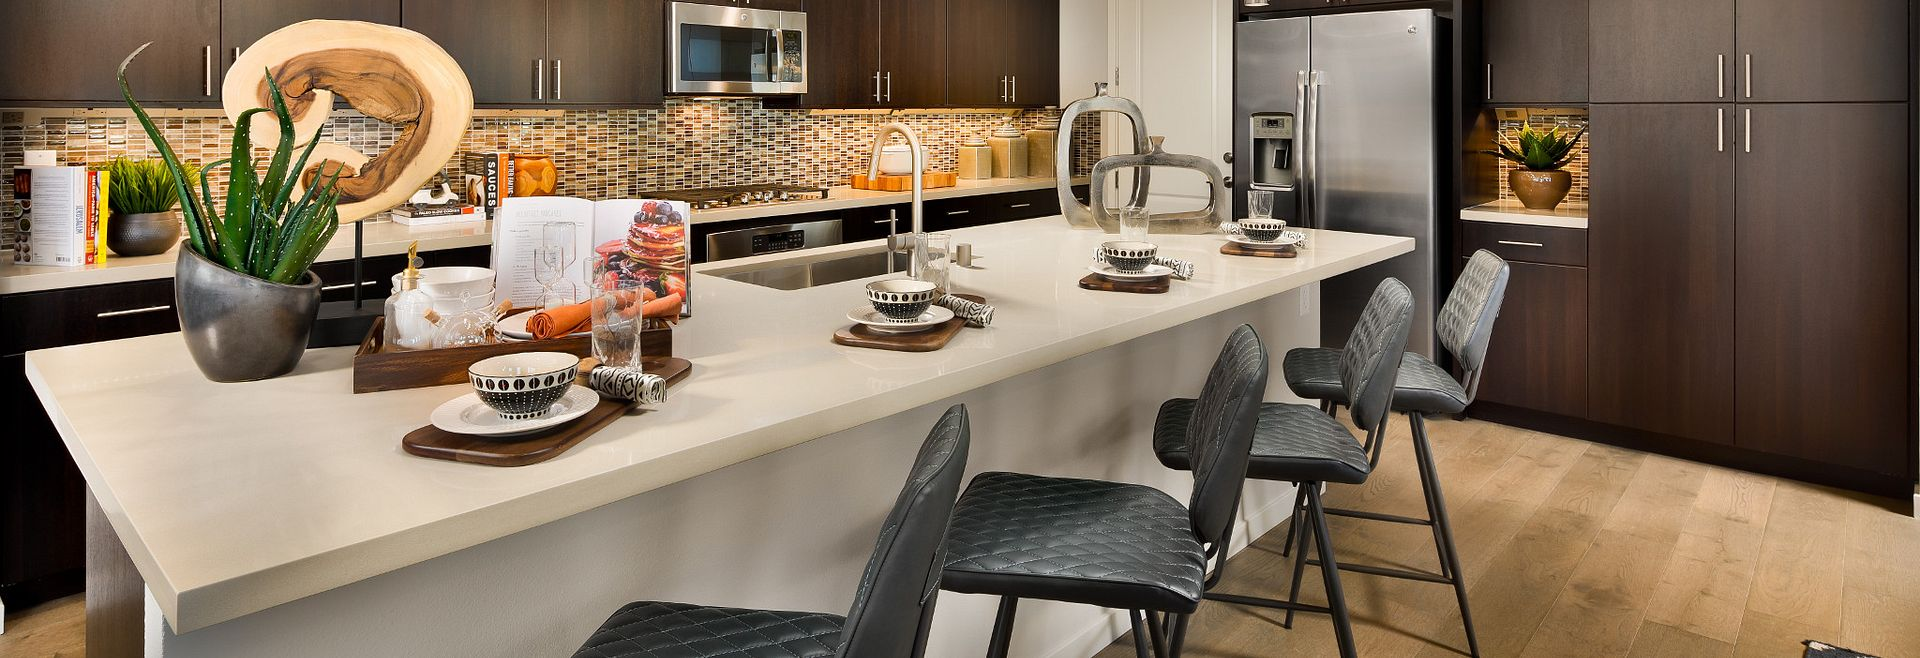 Trilogy Summerlin Haven Kitchen